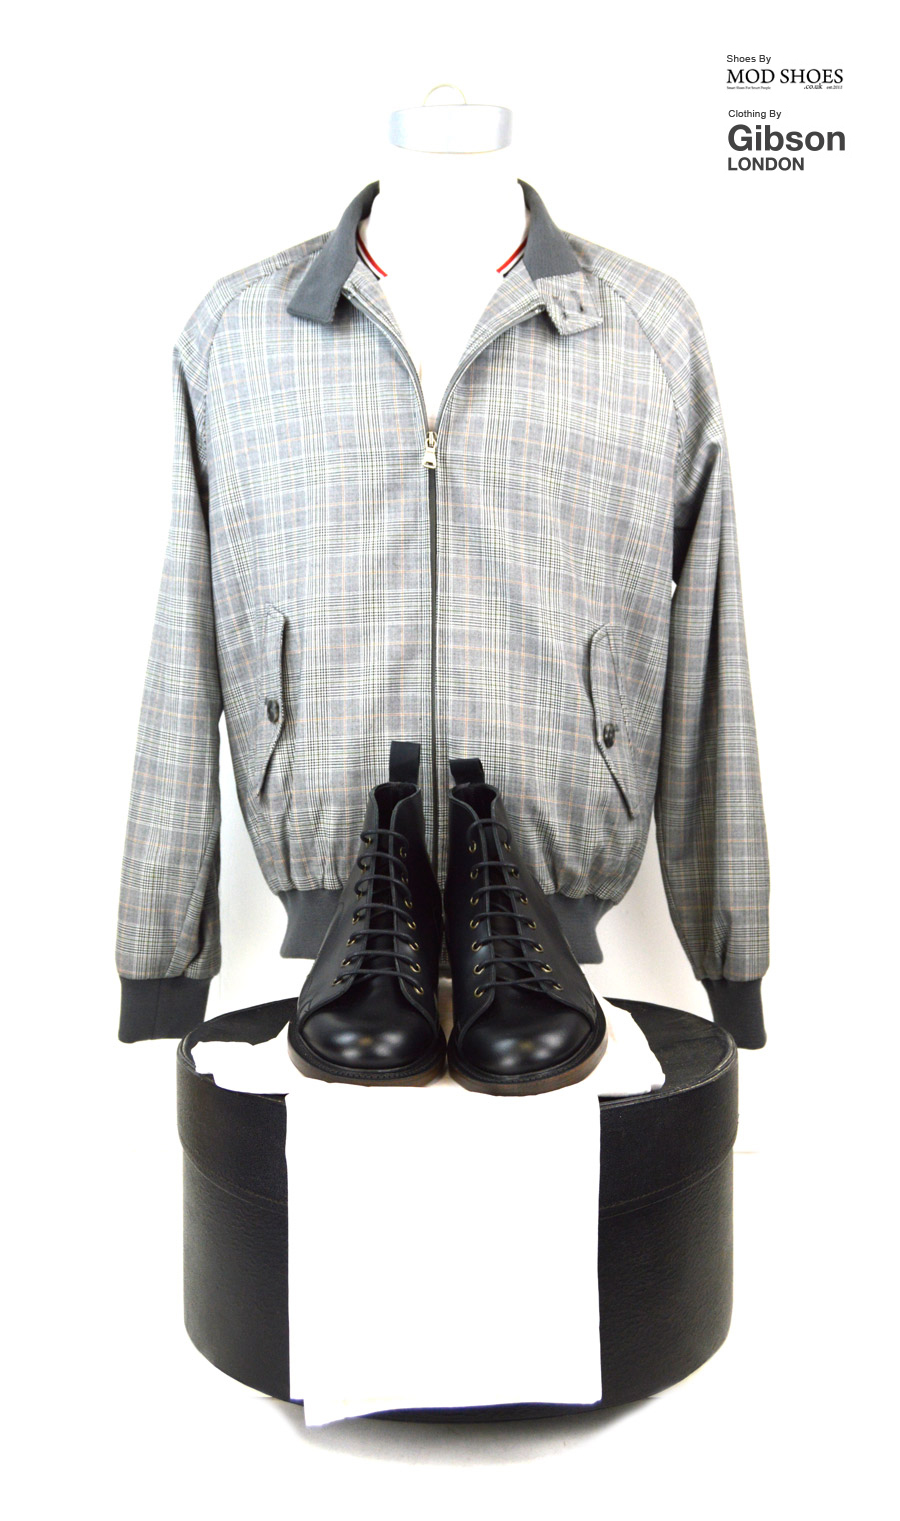 modshoes-black-monkey-boots-with-prince-of-wales-harrington-from-gibson-clothing